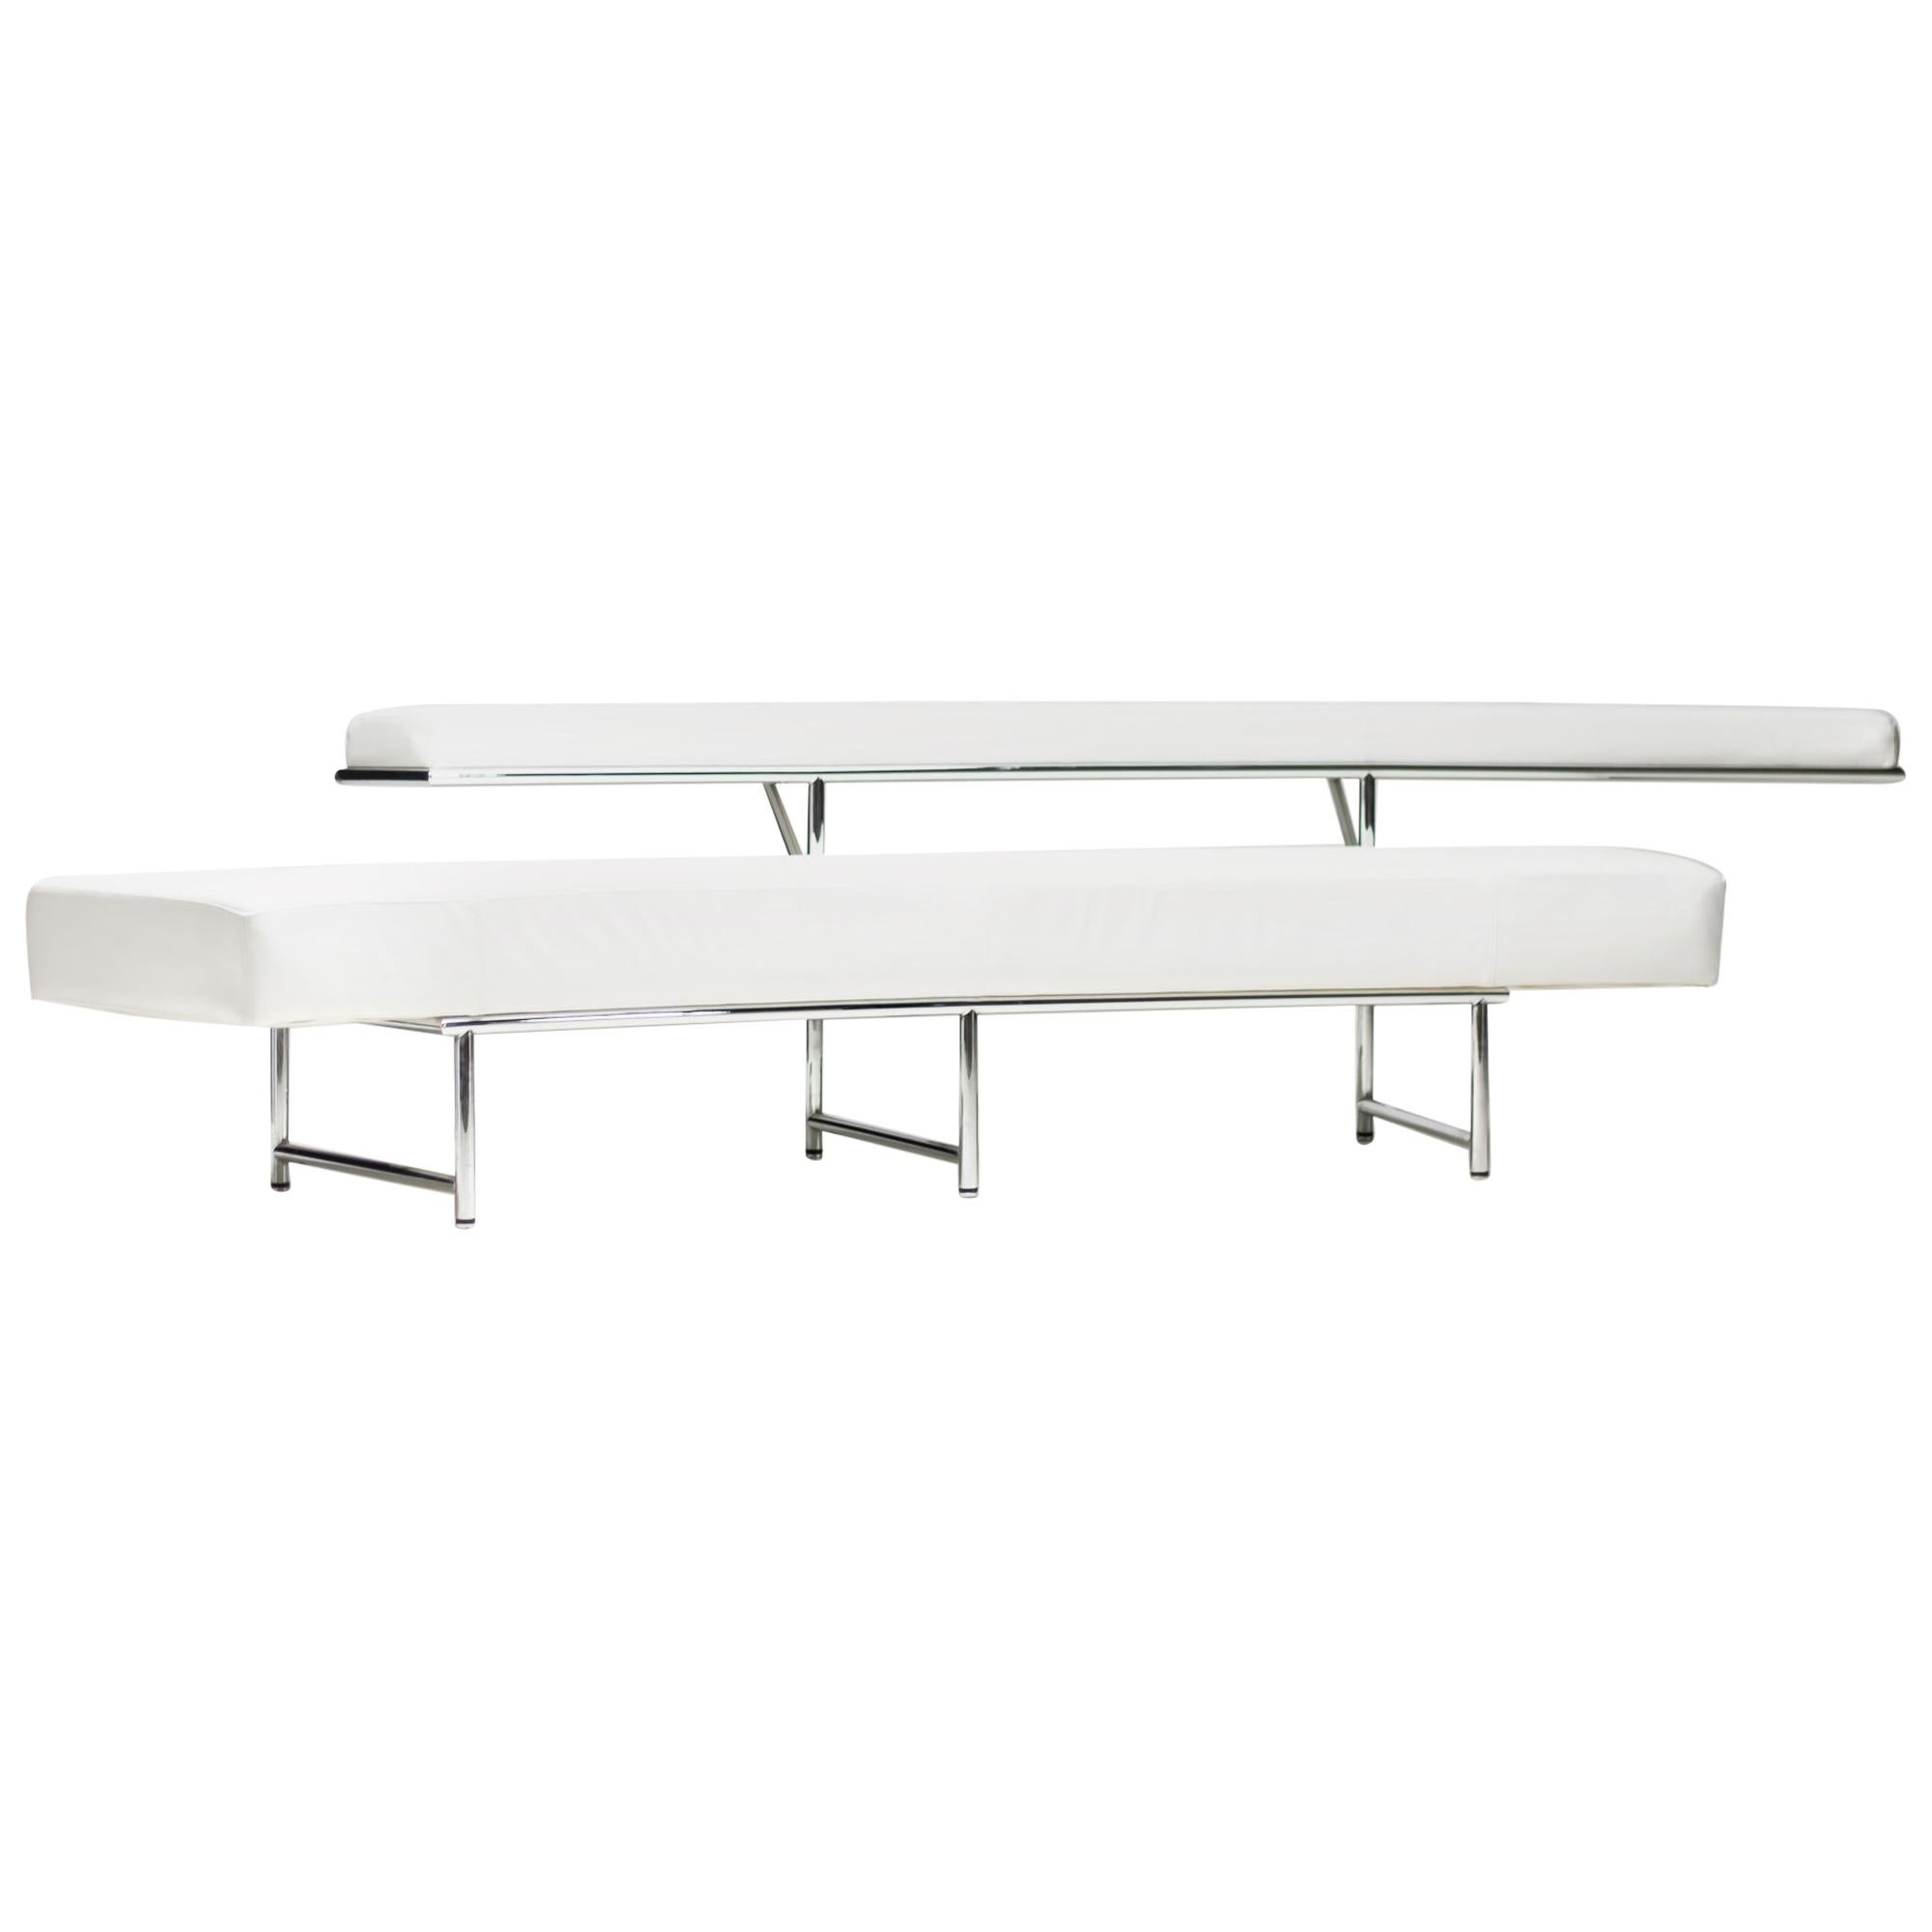 Monte Carlo Sofa in White Leather by Eileen Gray